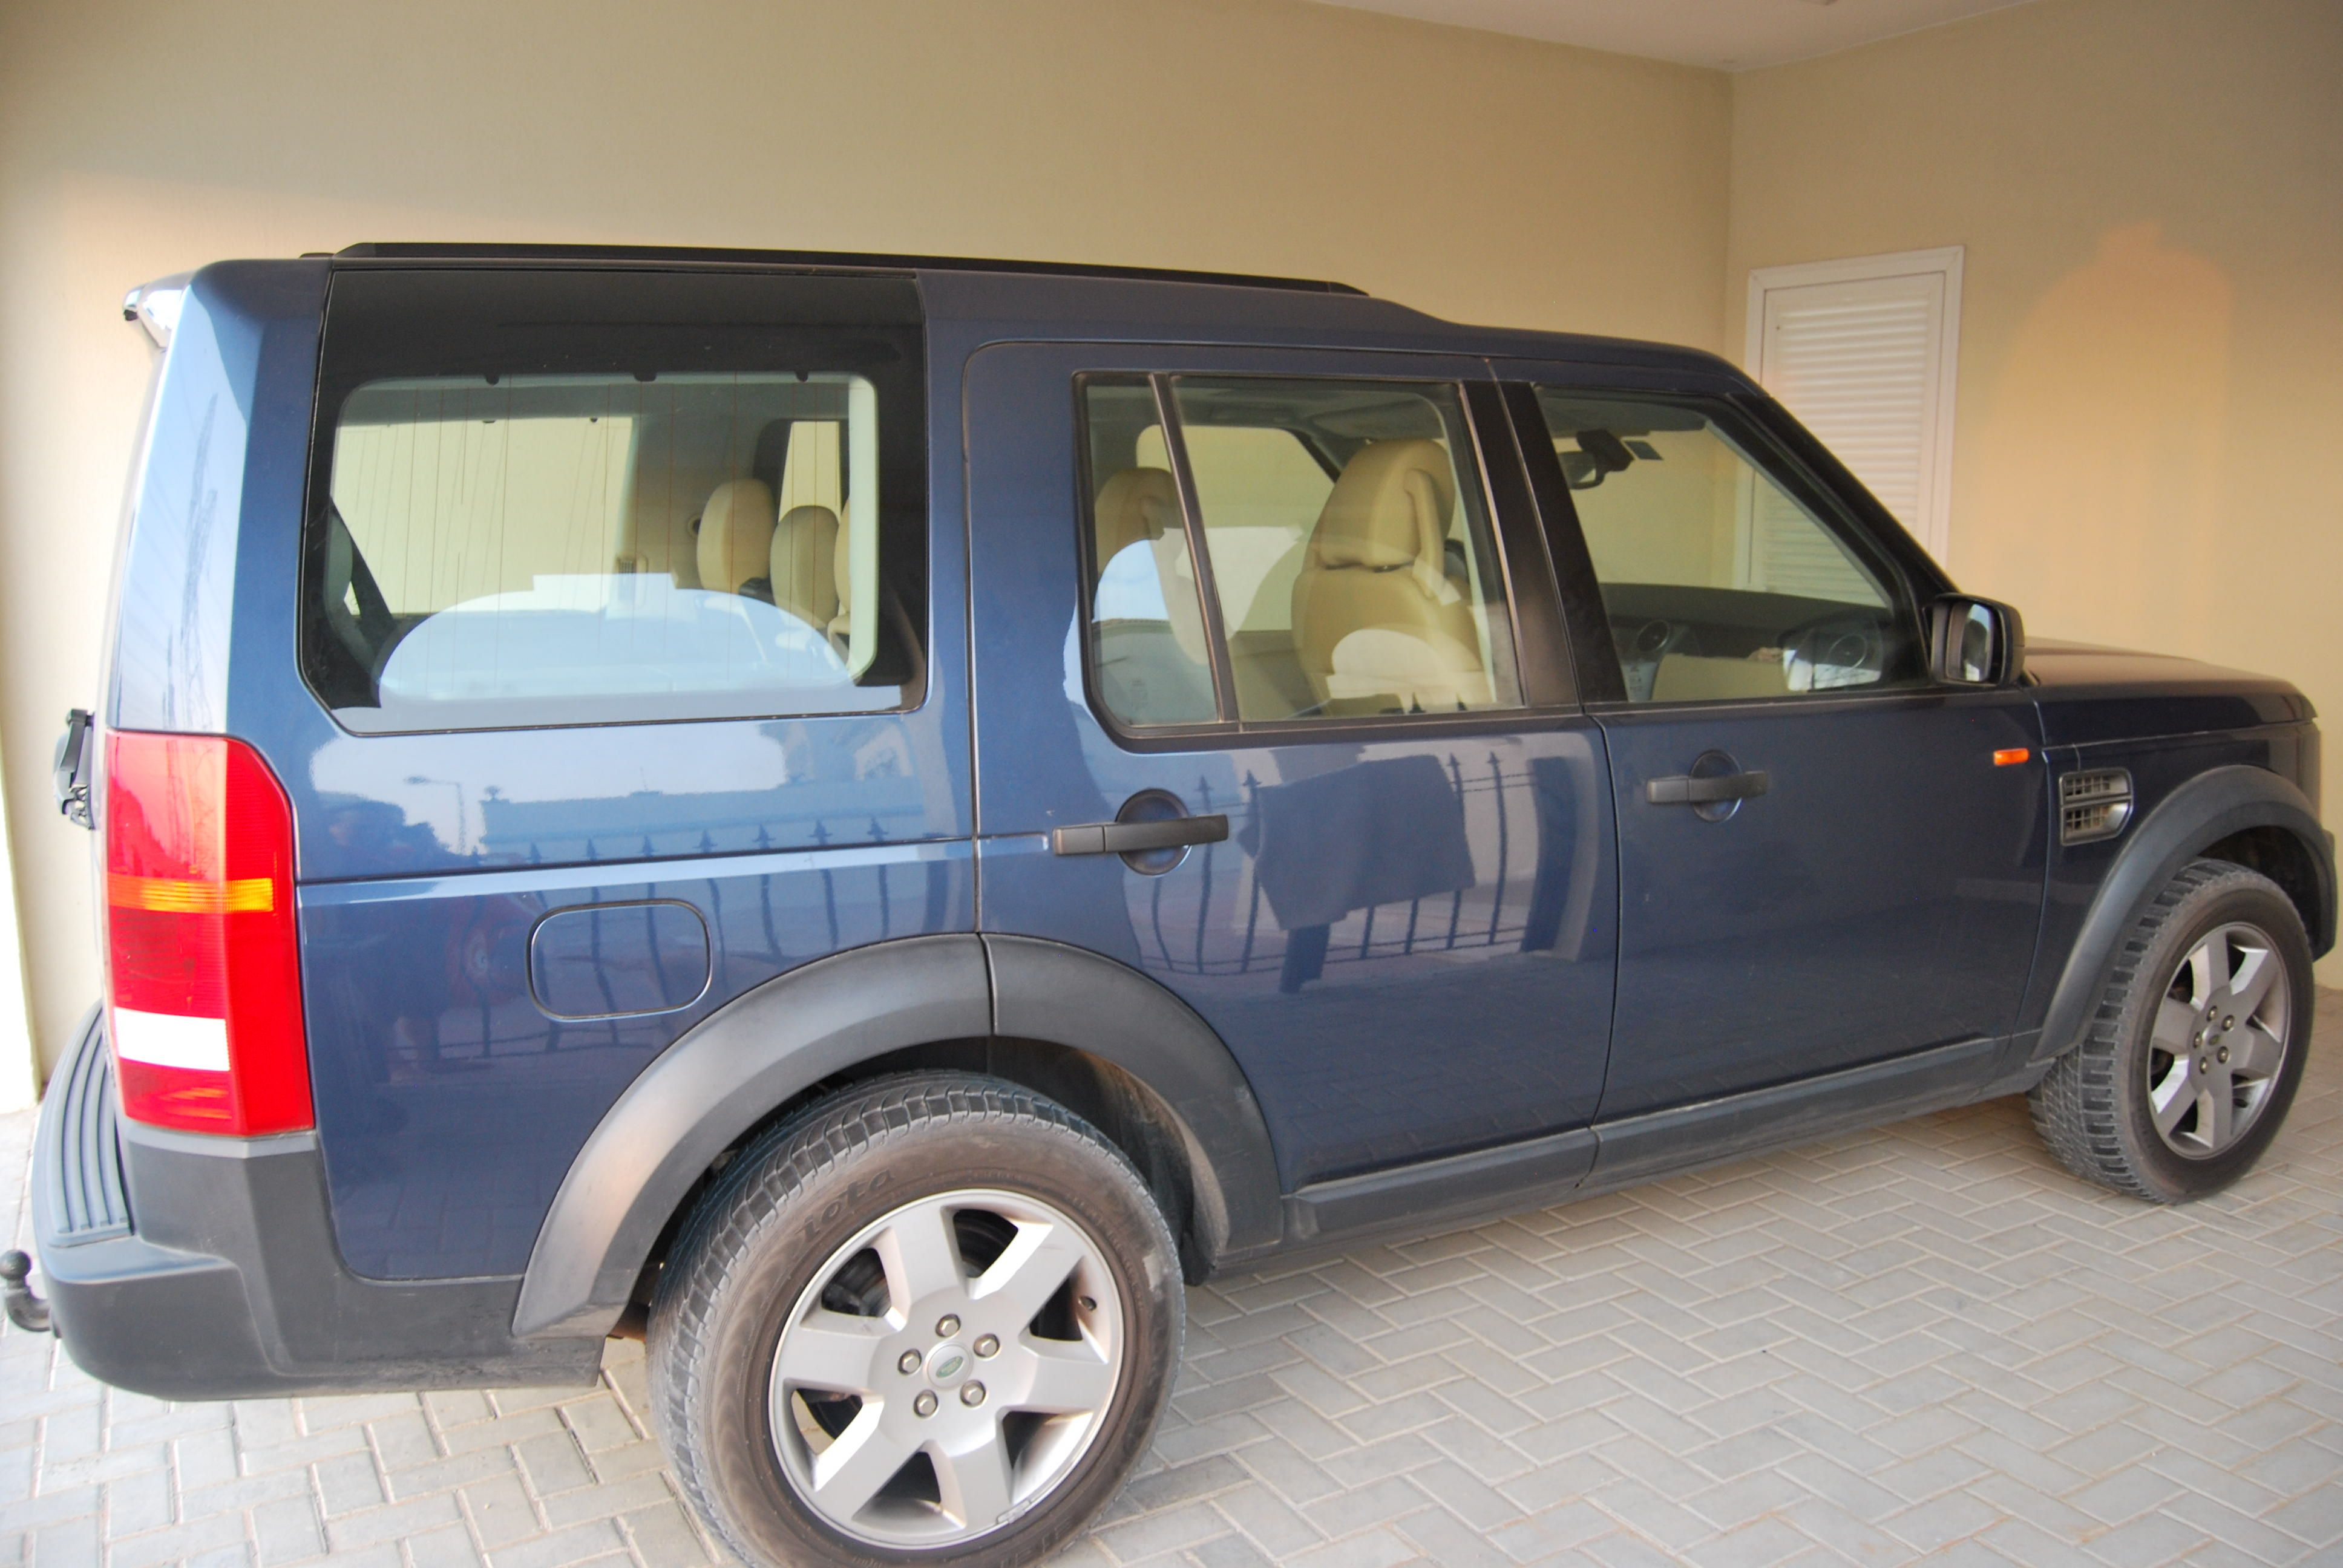 Land Rover Discovery 4.4 V8 HSE, 2006. Another dream came